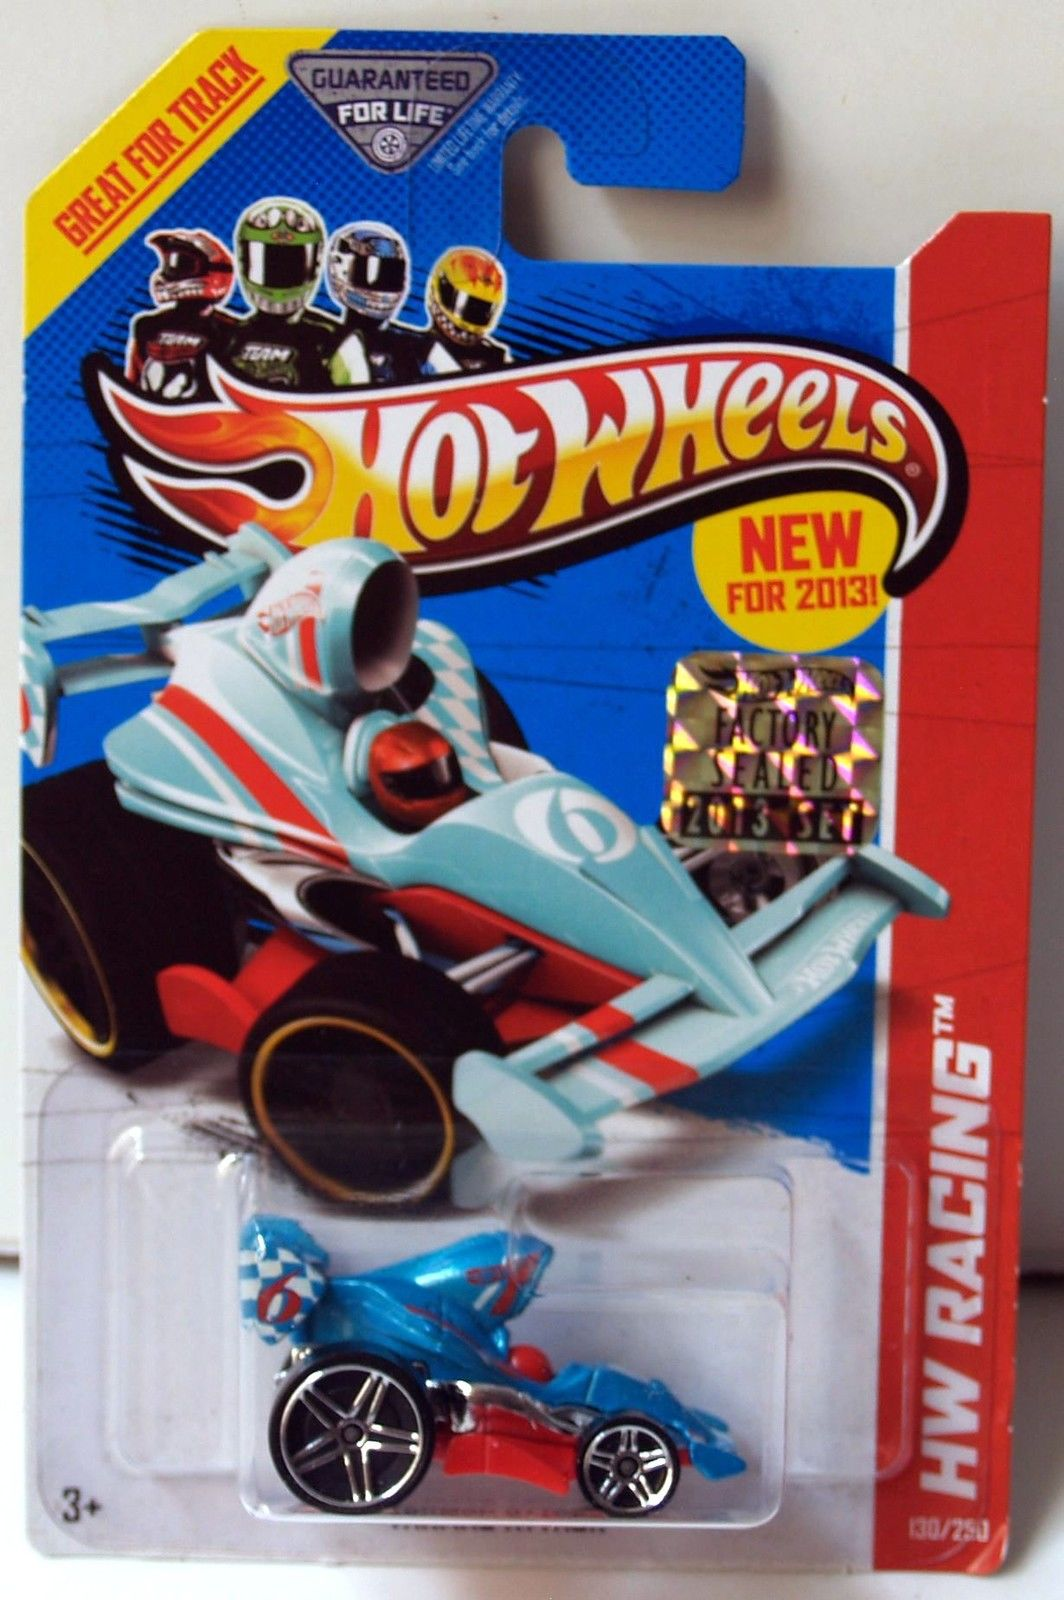 HOT WHEELS 2013 HW RACING TRACK ACES TARMAC ATTACK FACTORY SEALED